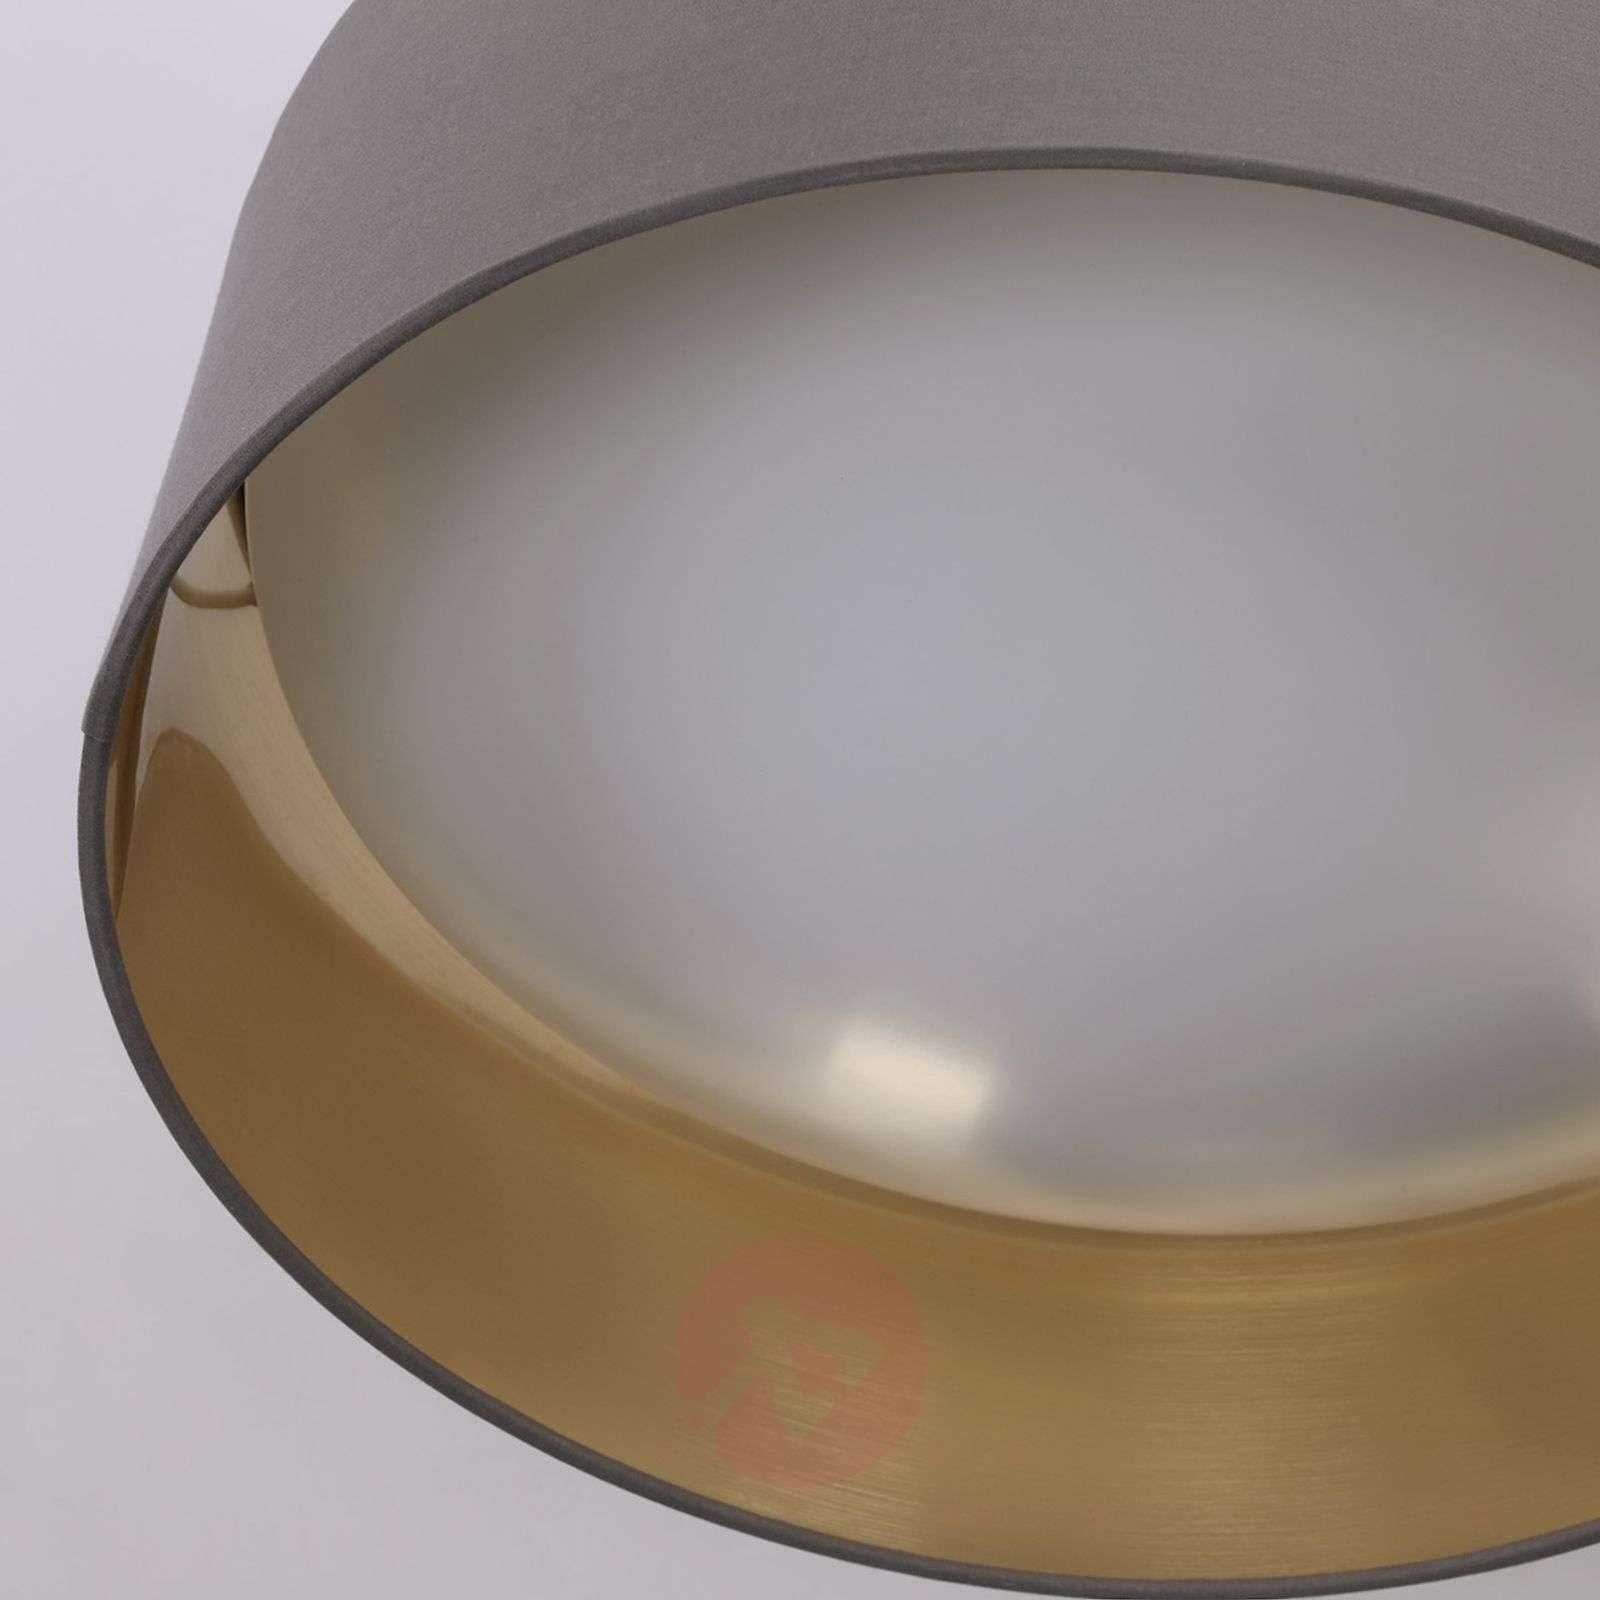 LED fabric ceiling lamp Coleen in grey and gold-9620644-01